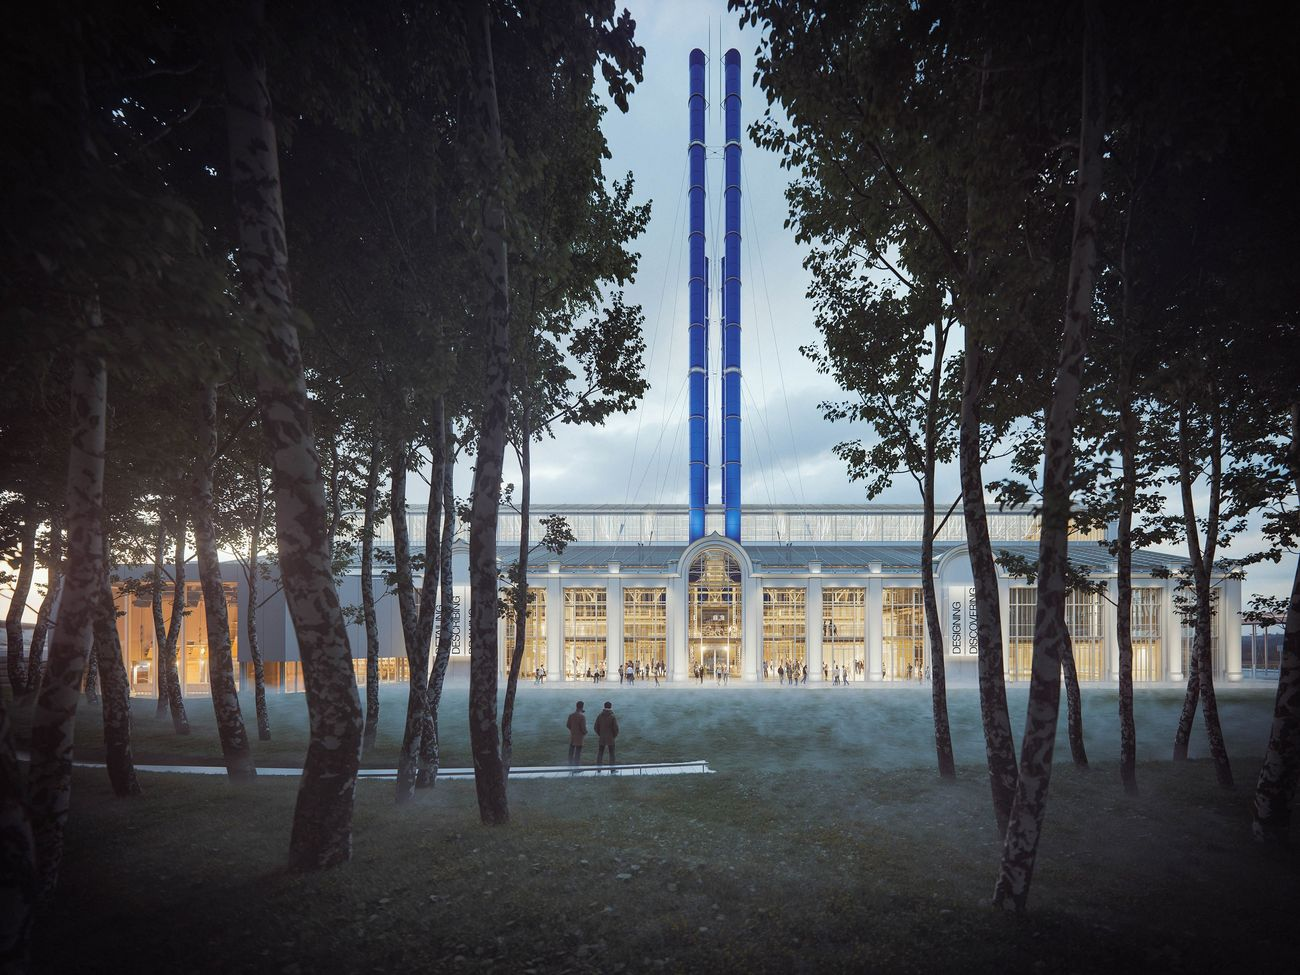 Renzo Piano Building Workshop GES 2, Mosca, Russia, 2015 in progress. View from the forest, render ® RPBW